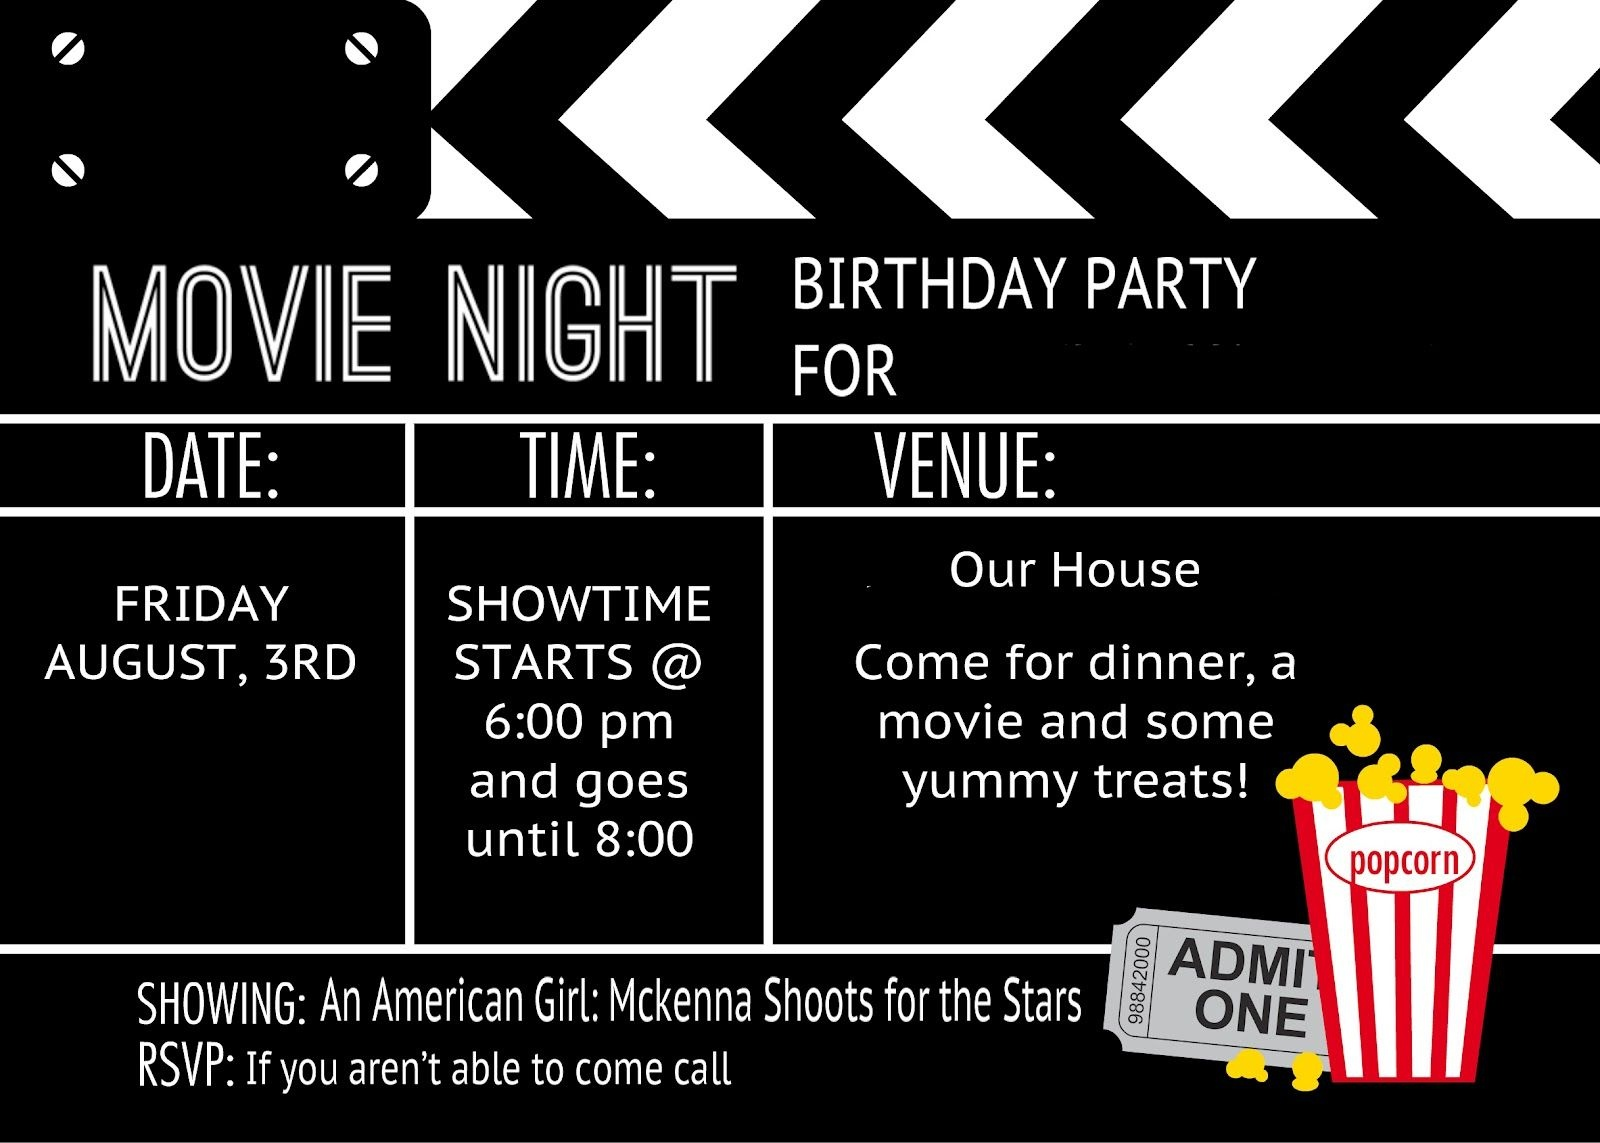 Birthday Party Invitation Templates Movie Theme | Kalli's 13Th - Free Printable Movie Ticket Birthday Party Invitations